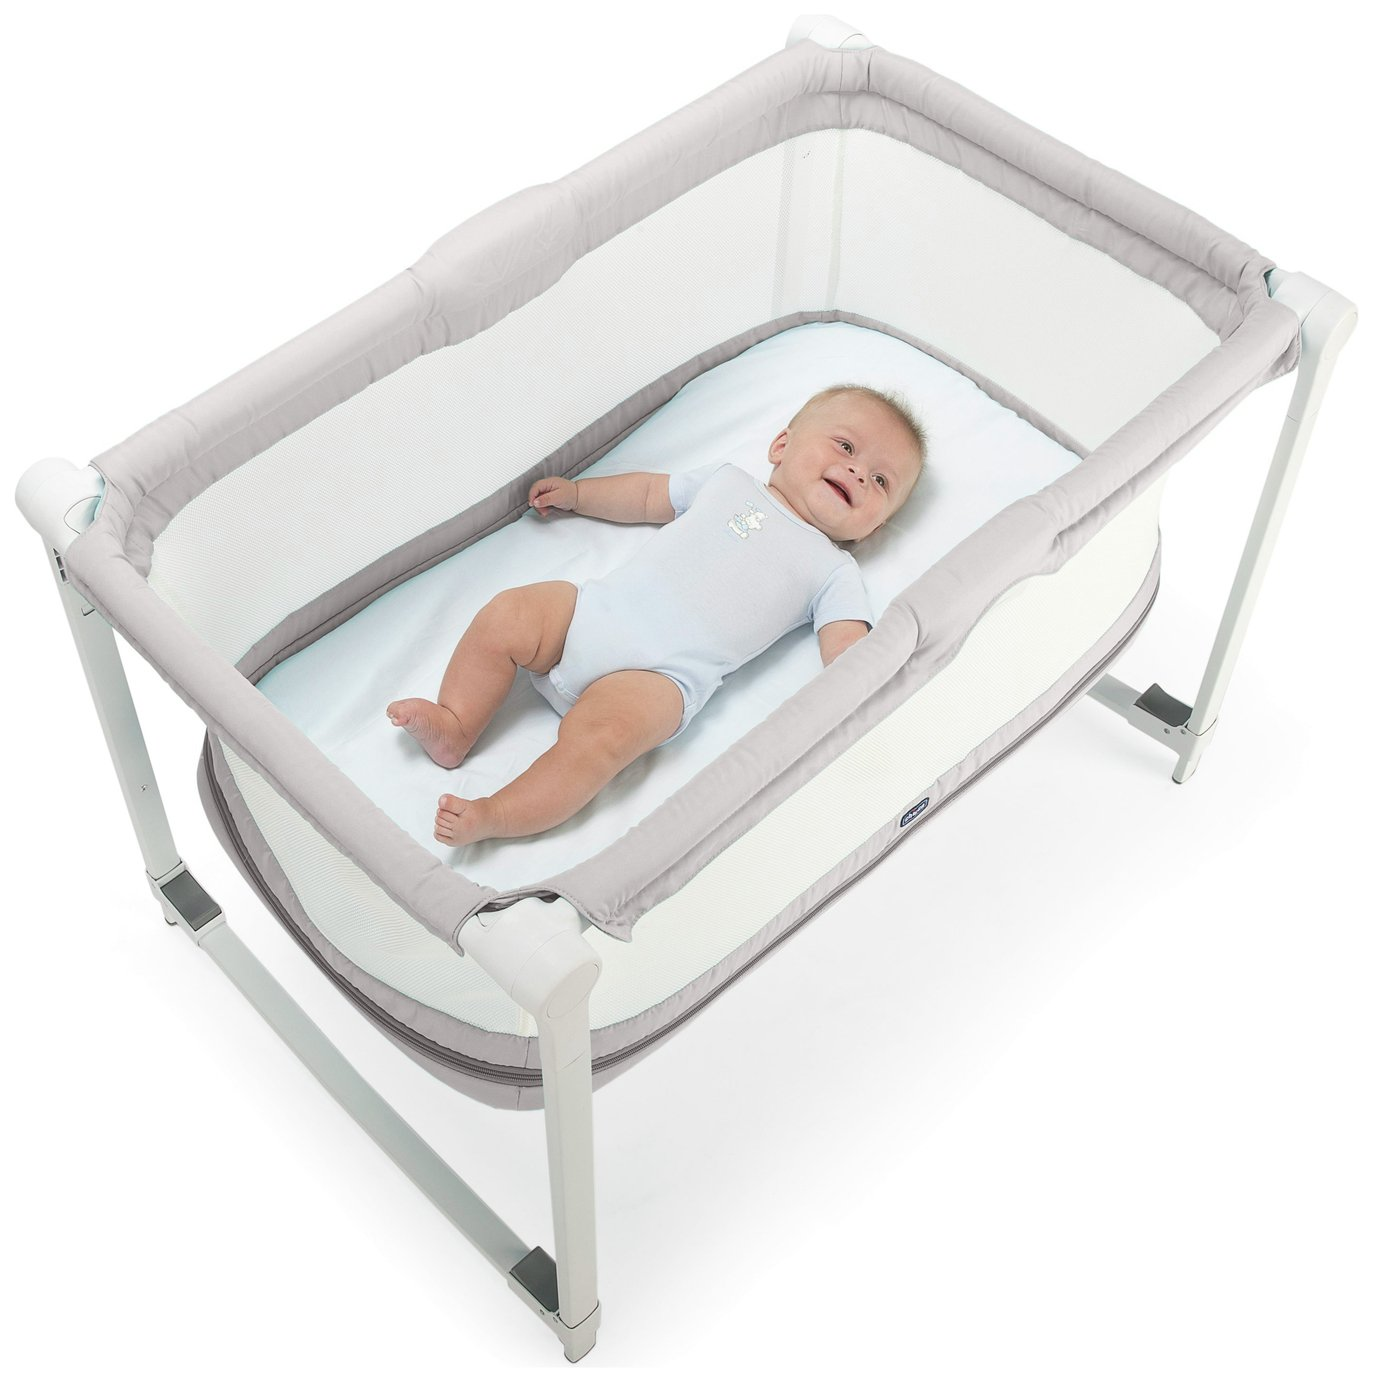 Image of Chicco Zip n Go Travel Crib - Glacial